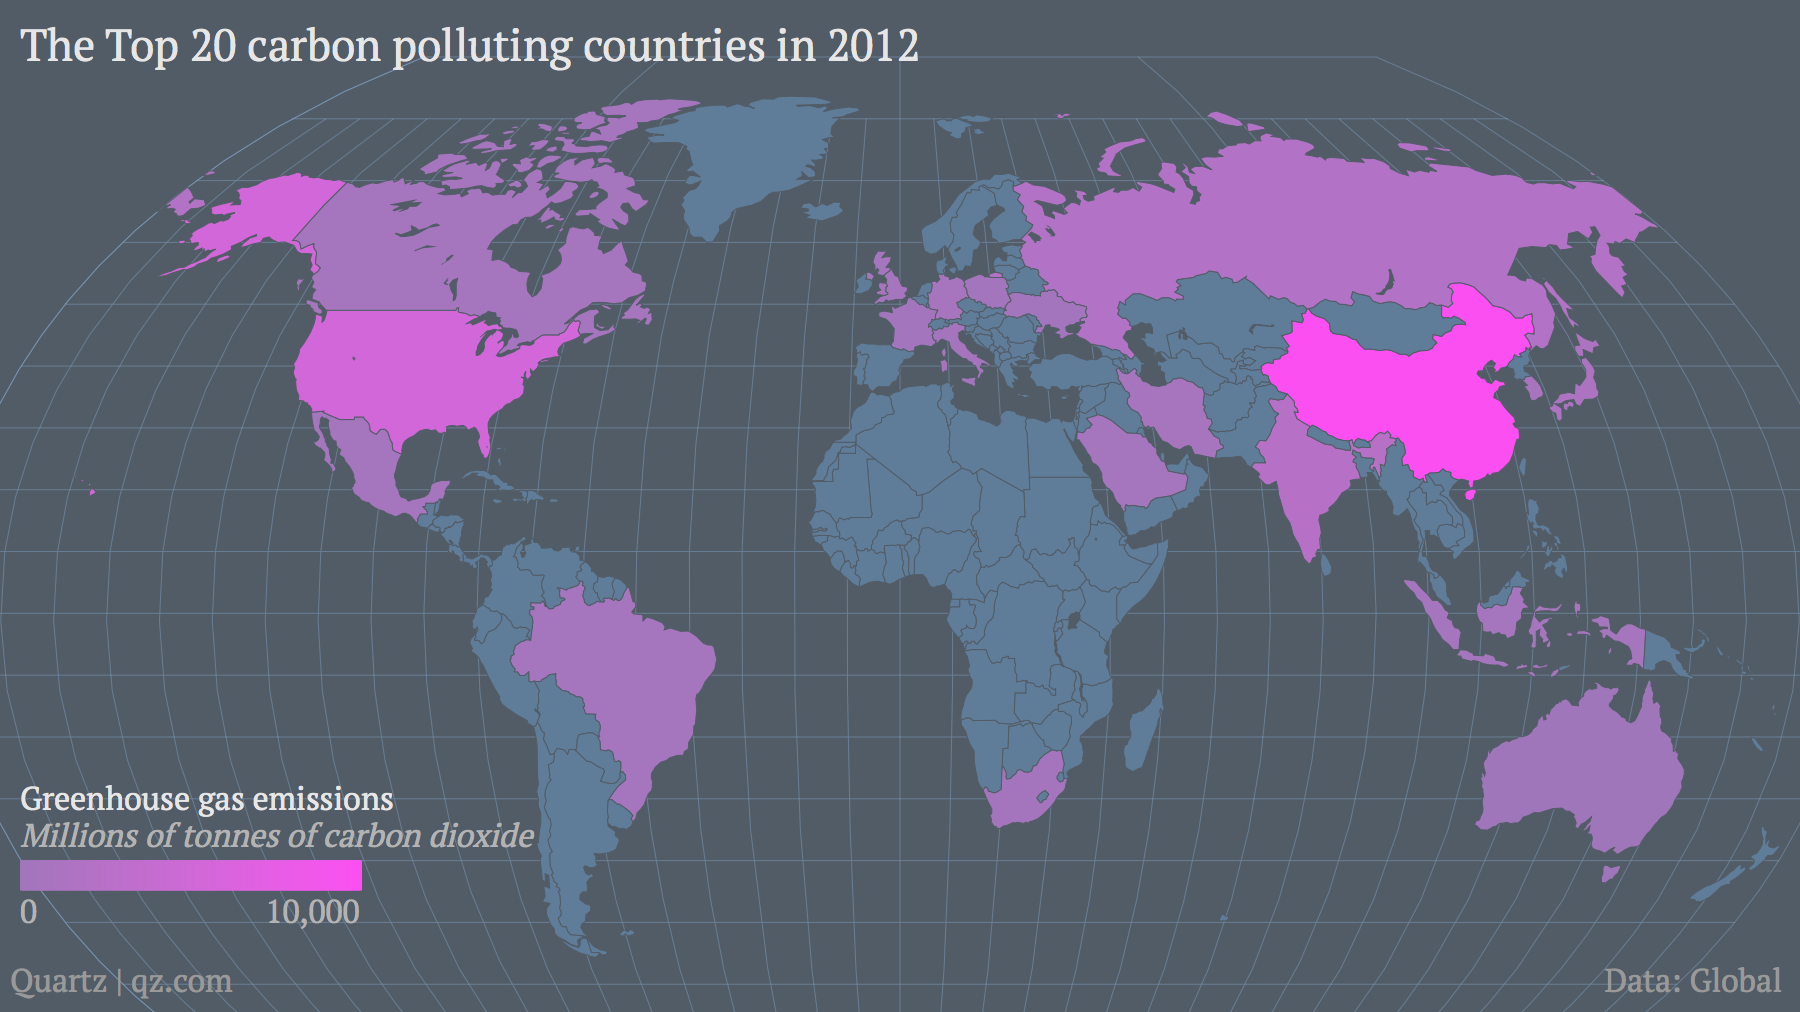 Top 20 carbon polluting countries 2012